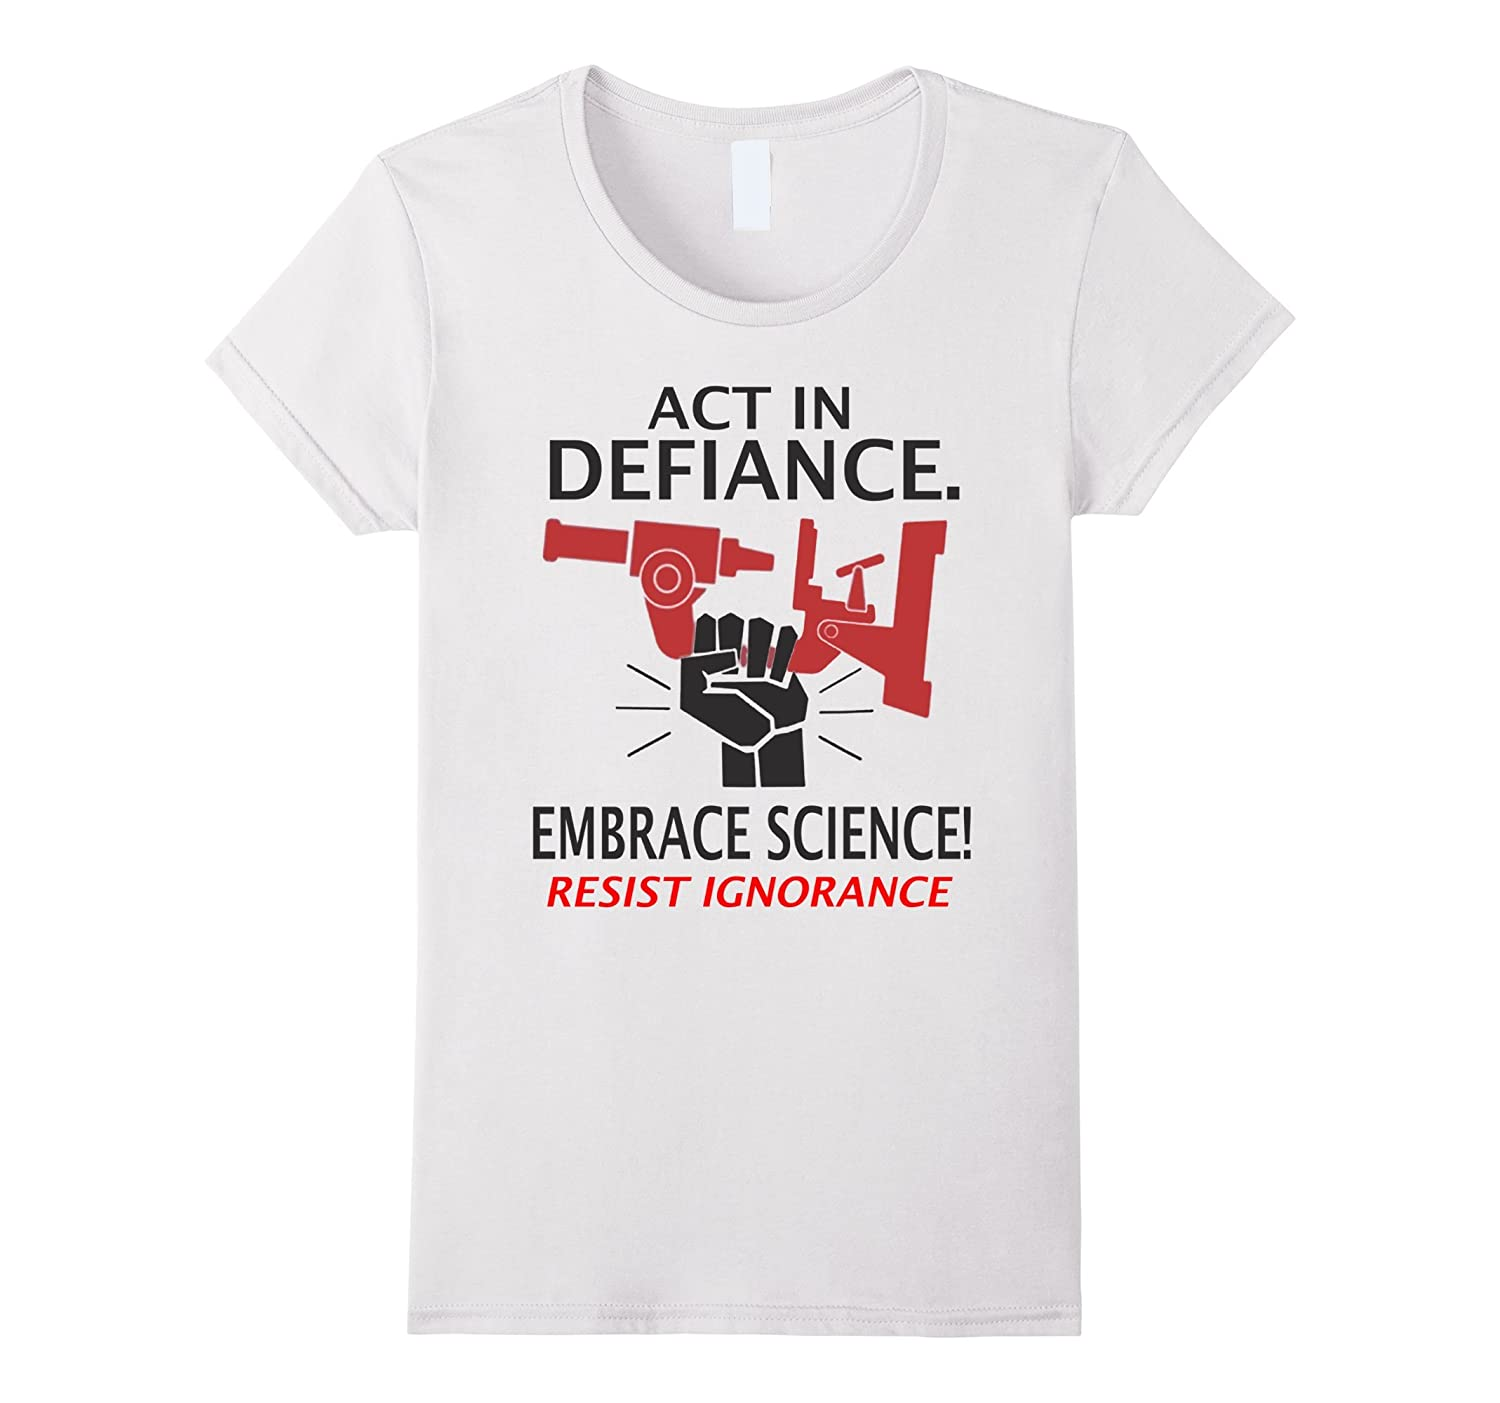 Act In Defiance, Embrace Science, Resist Ignorance T-shirt